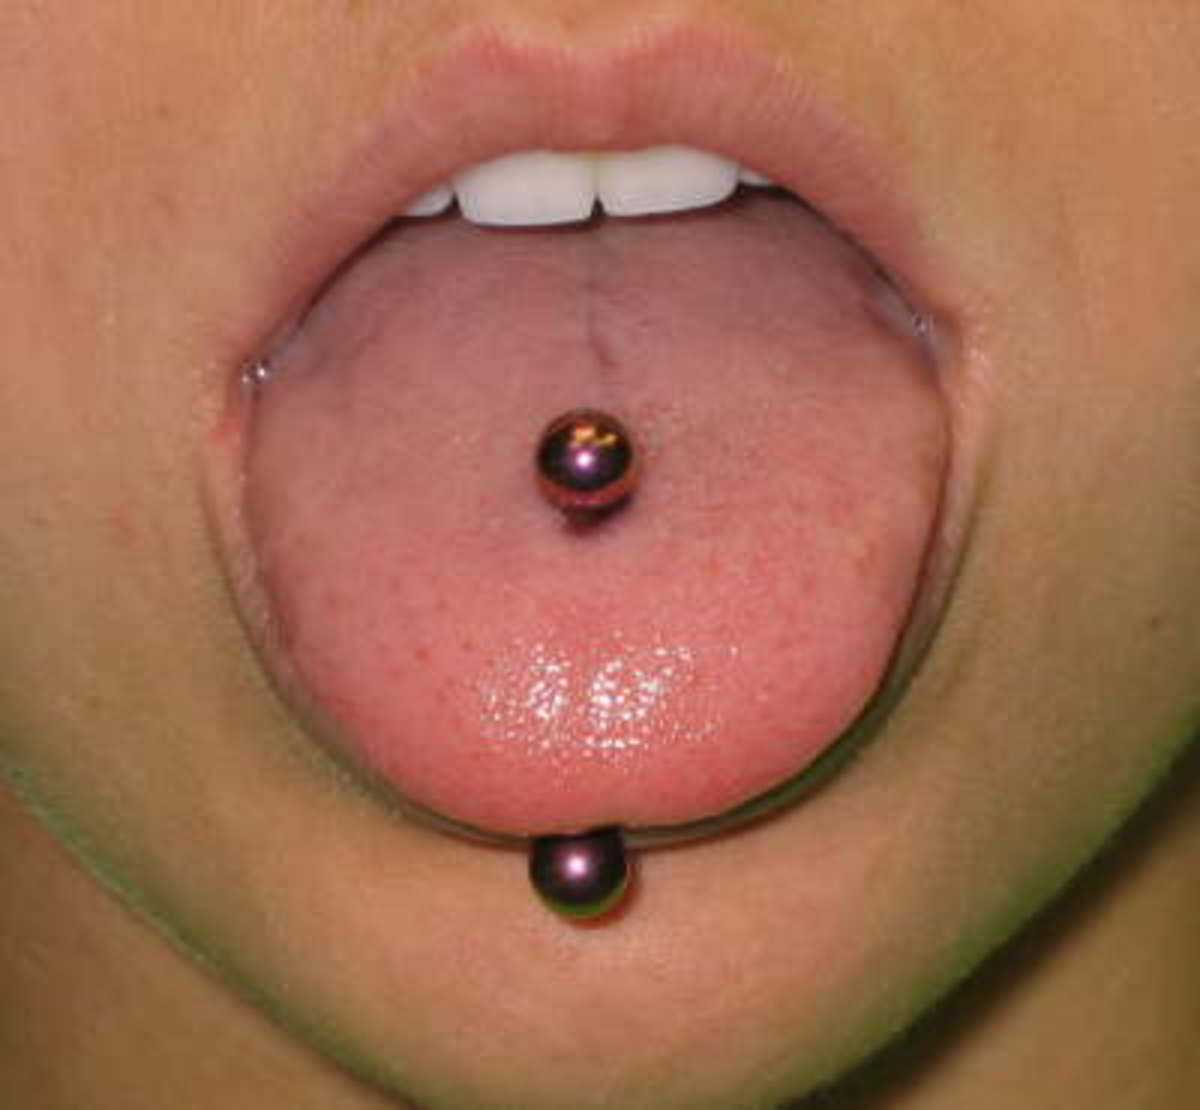 A traditional tongue piercing goes straight through the tongue.